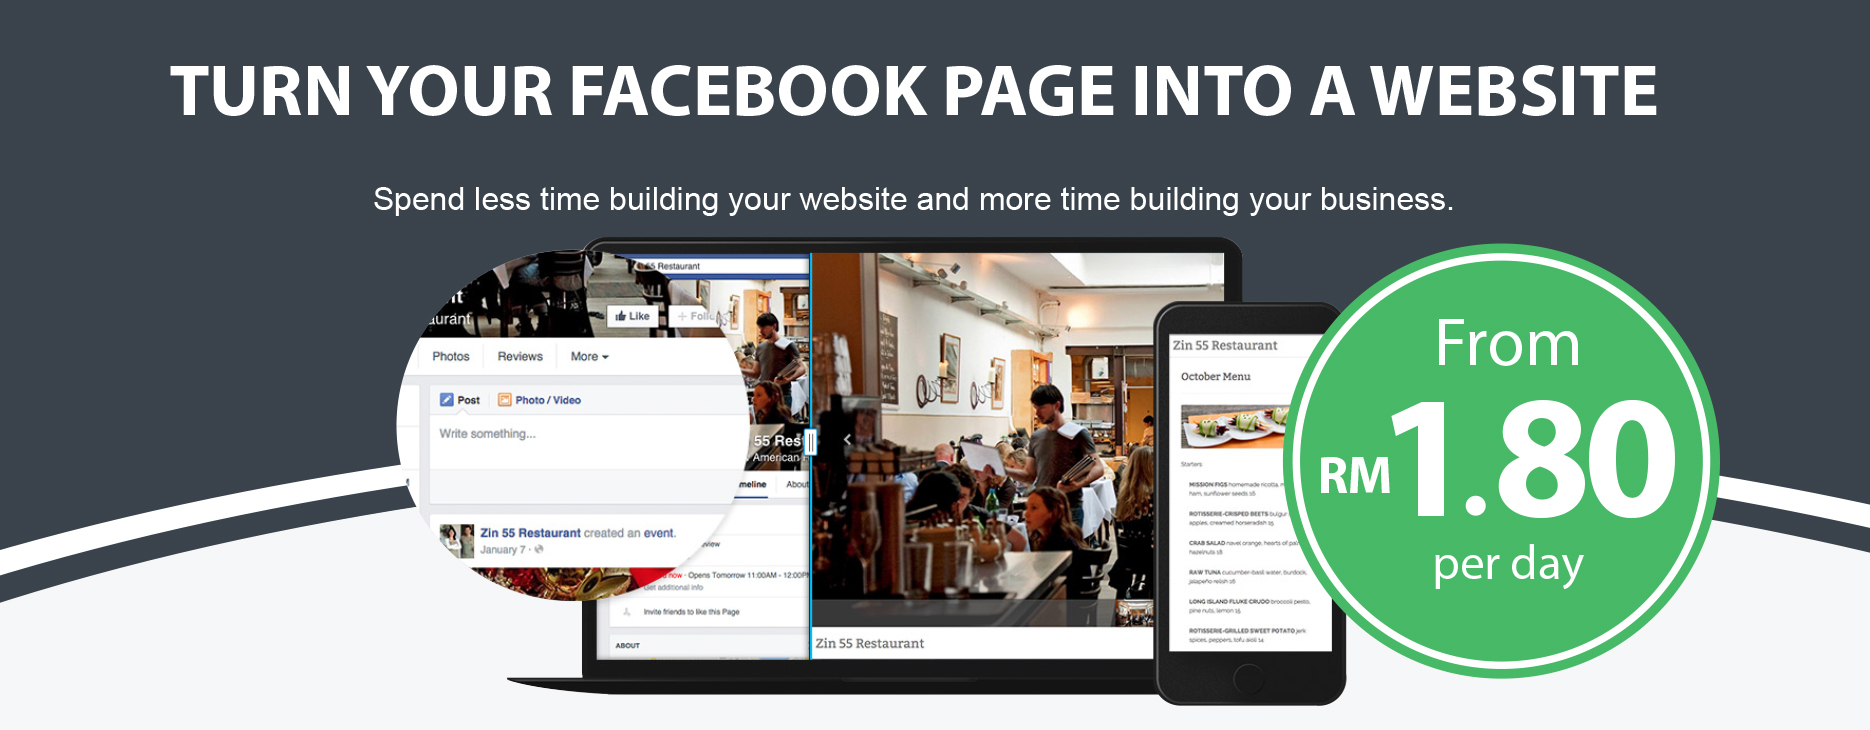 Turn your Facebook page into a website - Pagevamp Malaysia